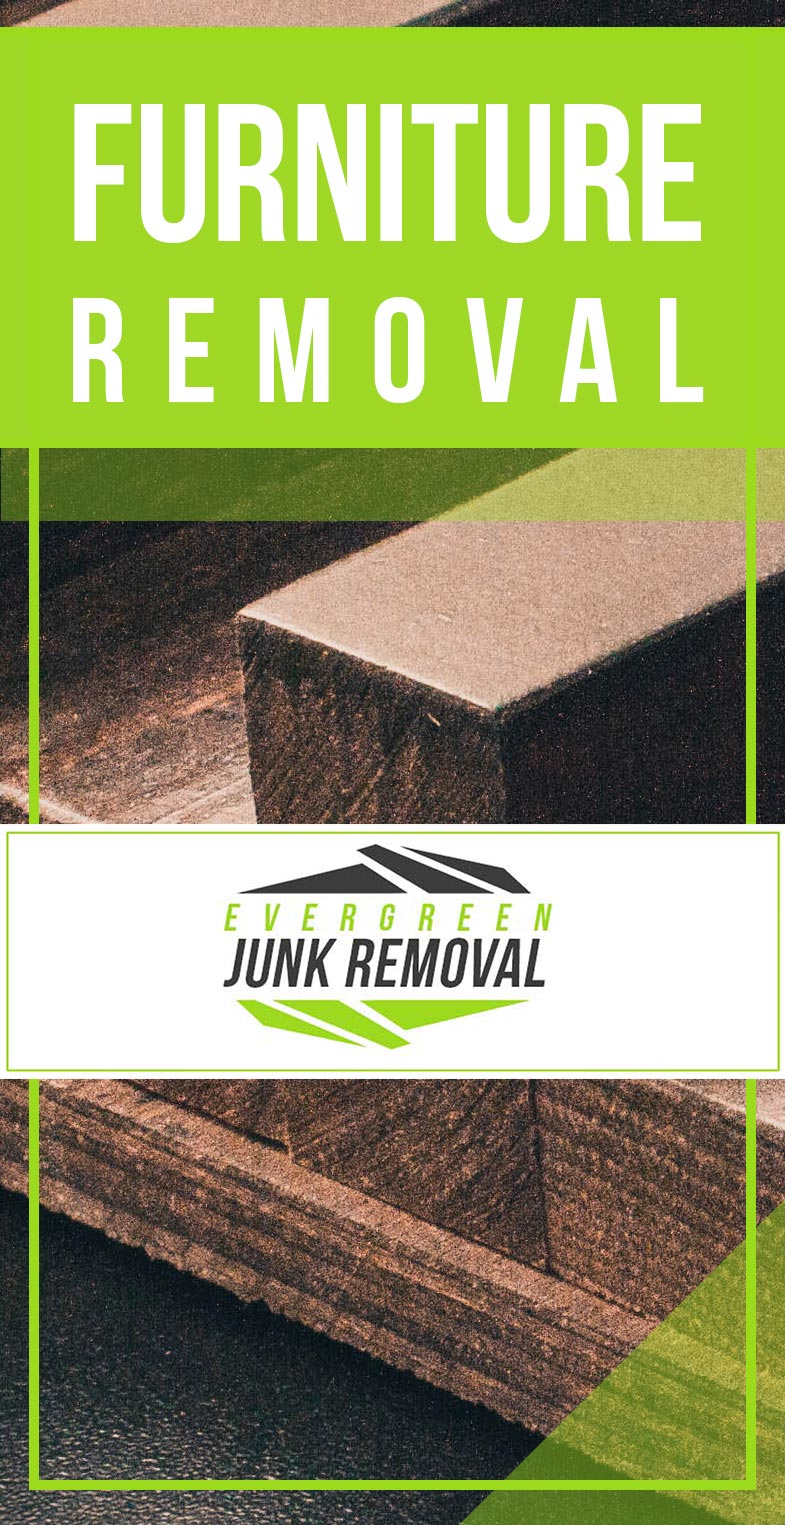 Dearborn Heights Furniture Removal